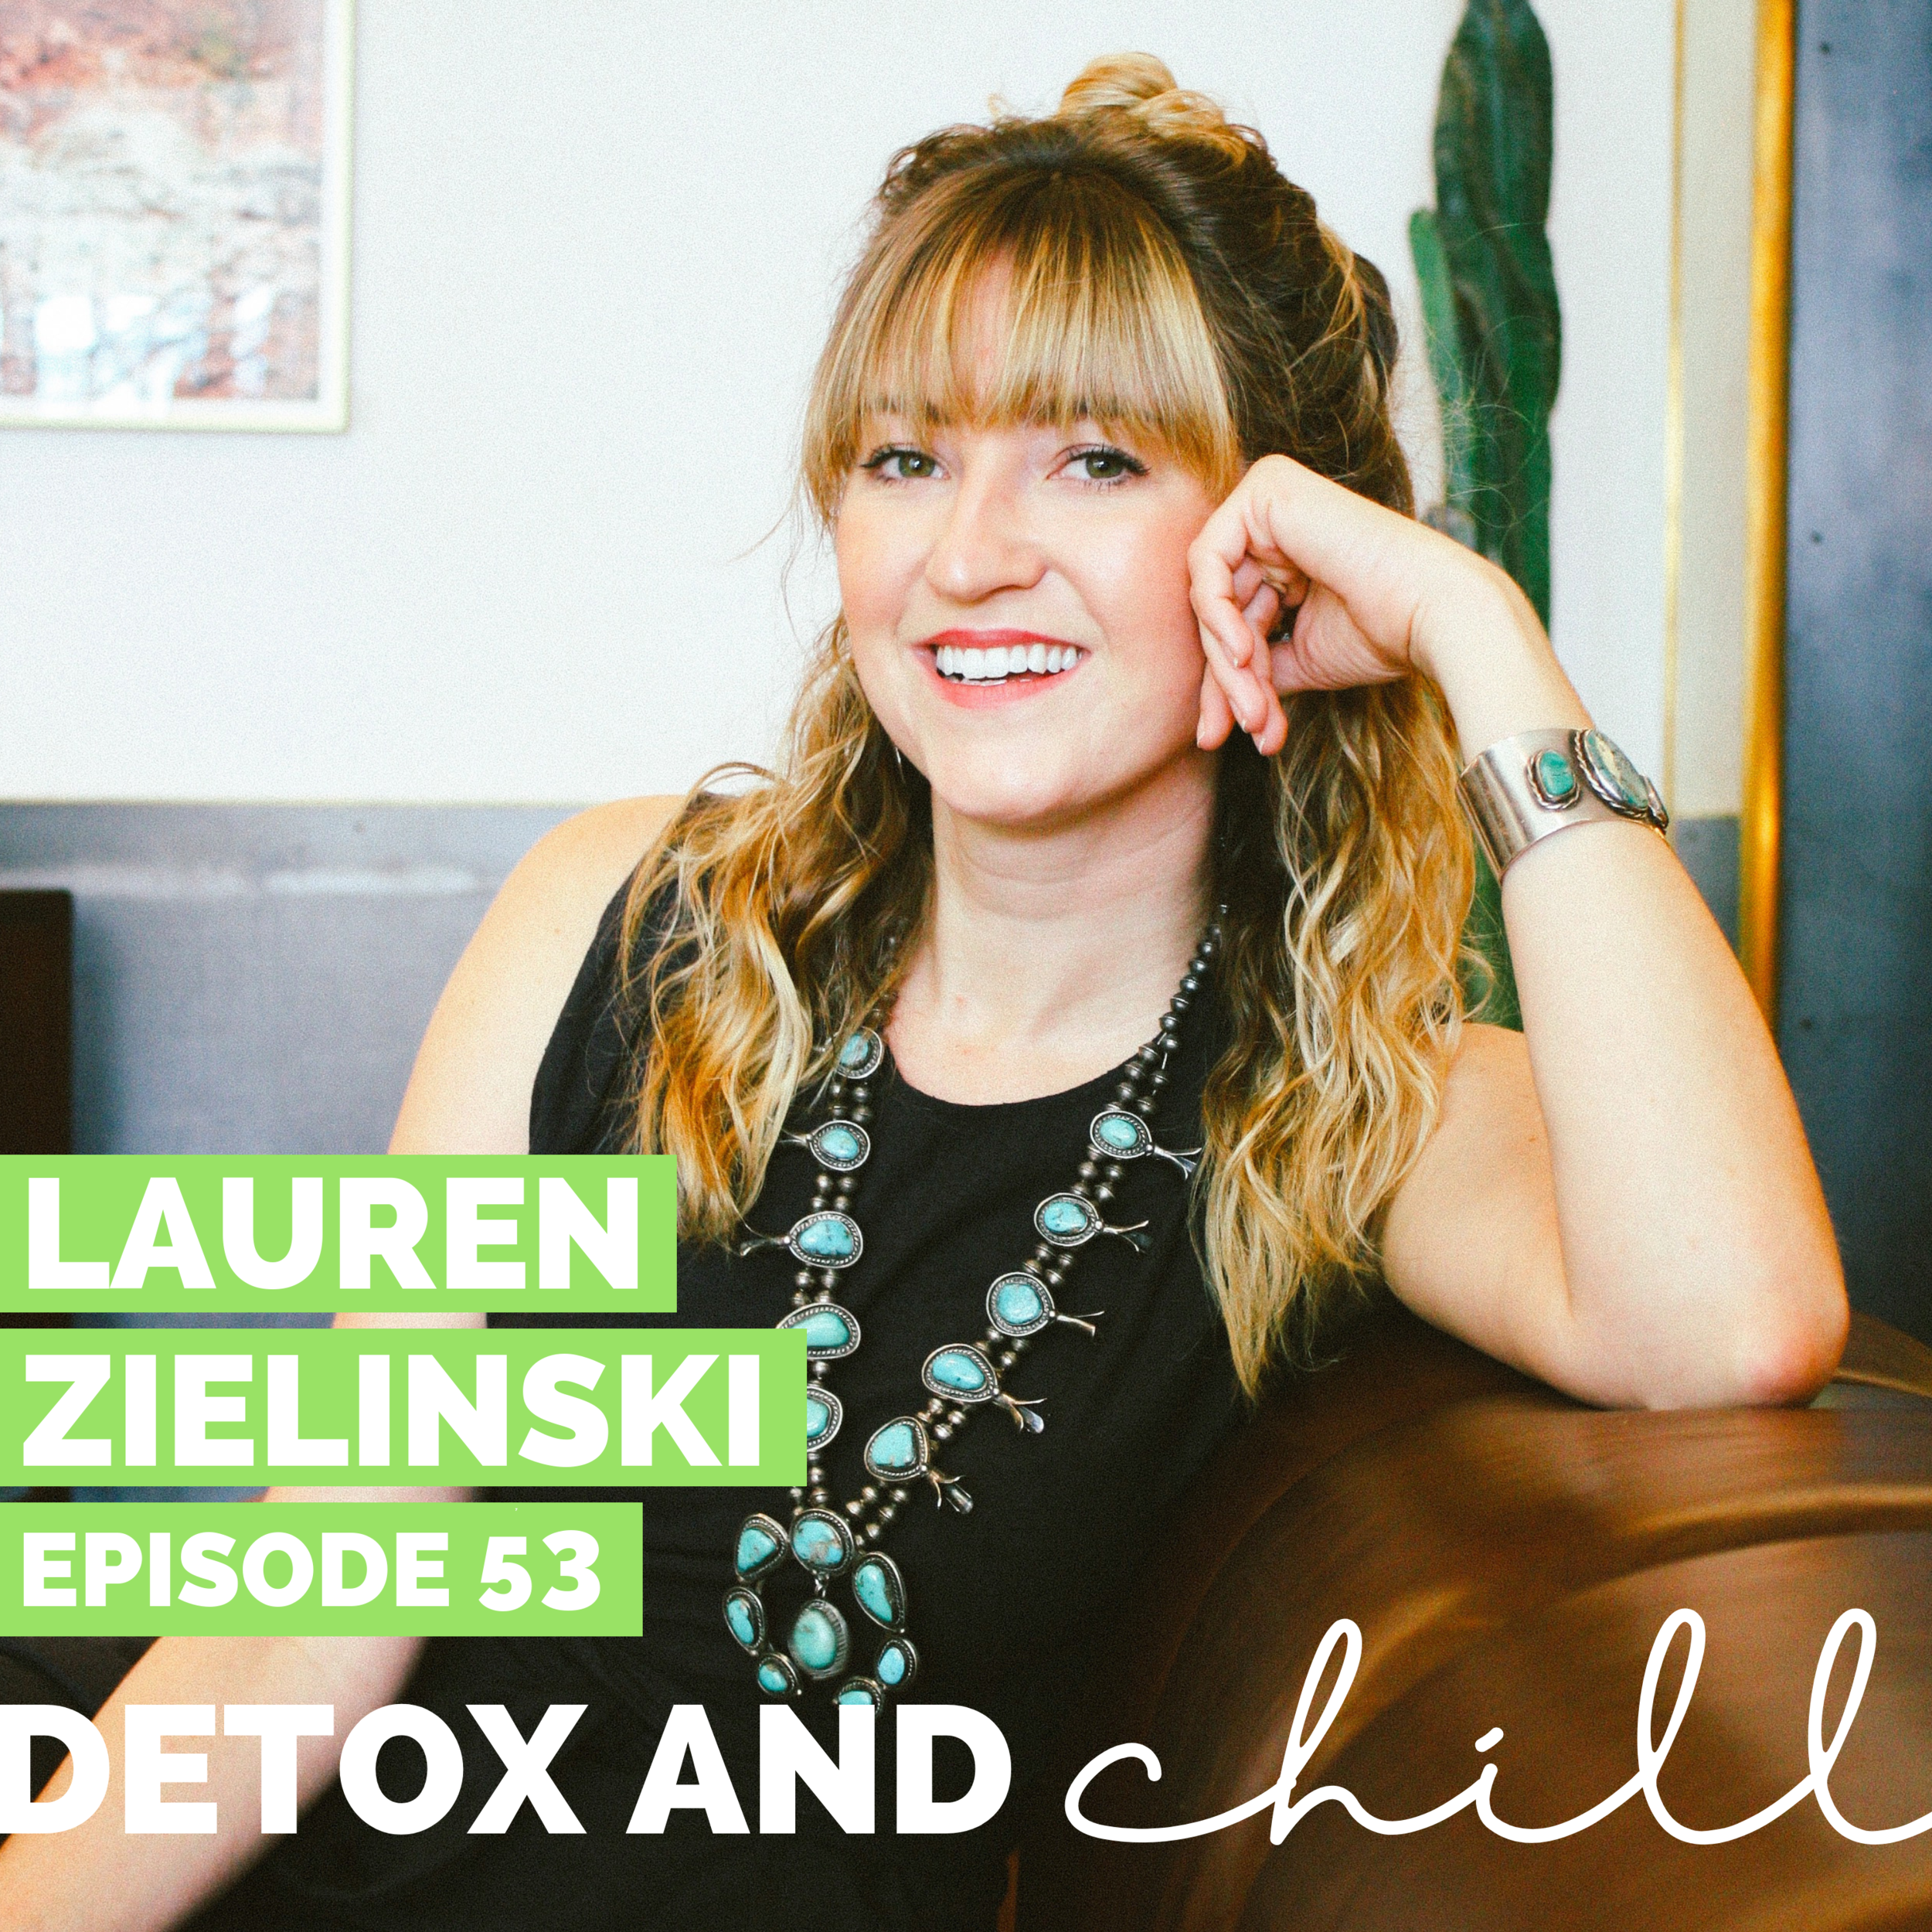 Episode #53: Lauren Zielinski // Certified Nurse Midwife & Founder of New Moon Rising // Vaginas, Midwifery, and Gyno Visits - This week we're back with Lauren Zielinski, a certified nurse-midwife and founder of New Moon Rising. New Moon Rising works in cities across the US to hold free, day-long workshops that foster discussion about reproductive health, political advocacy, natural medicine options, and community connections.We felt really strongly that we needed to start opening the discussion around female sexual health and empowerment, and Lauren was so generous to share her wealth of knowledge.In this episode we talk about…-The difference between a midwife / doula / doctor;- The difference in care you receive between these options;- The importance of advocating for yourself at your annual checkup and how to approach the situation to get important questions answered;- Things that are natural for women // things to avoid in our routinesWe are beyond excited about this episode! AND…we have a HUGE announcement! We are doing an event in LA on June 15th ALL about these important discussions that we need to be having as women. We are on cloud nine that we are able to partner with Jess Suchan, who was our 5th episode of the podcast!This event will be an afternoon of An afternoon featuring libido boosting treats, CBD mocktails and sinless self-care. Enjoy a live podcast recording with your hosts Meghan & Beck of the Detox and Chill Podcast and Jess Suchan of Body Bliss by Jess. Open, honest dialogue with a panel of experts discussing female sexuality, fertility, libido and the meaning of sexual confidence at any stage in life.Your sinless self-care will include mini clean beauty makeovers, manicures & sexy sugar-free chocolate. Peruse carefully curated brands including Lunya loungewear and treat yourself to our aphrodisiac dessert board! AND you'll get to walk away with a complimentary gift bag filled with things we truly love!We would LOVE to see you there…stay tuned for more details this week.We love you!Xoxo,Meg & Beck